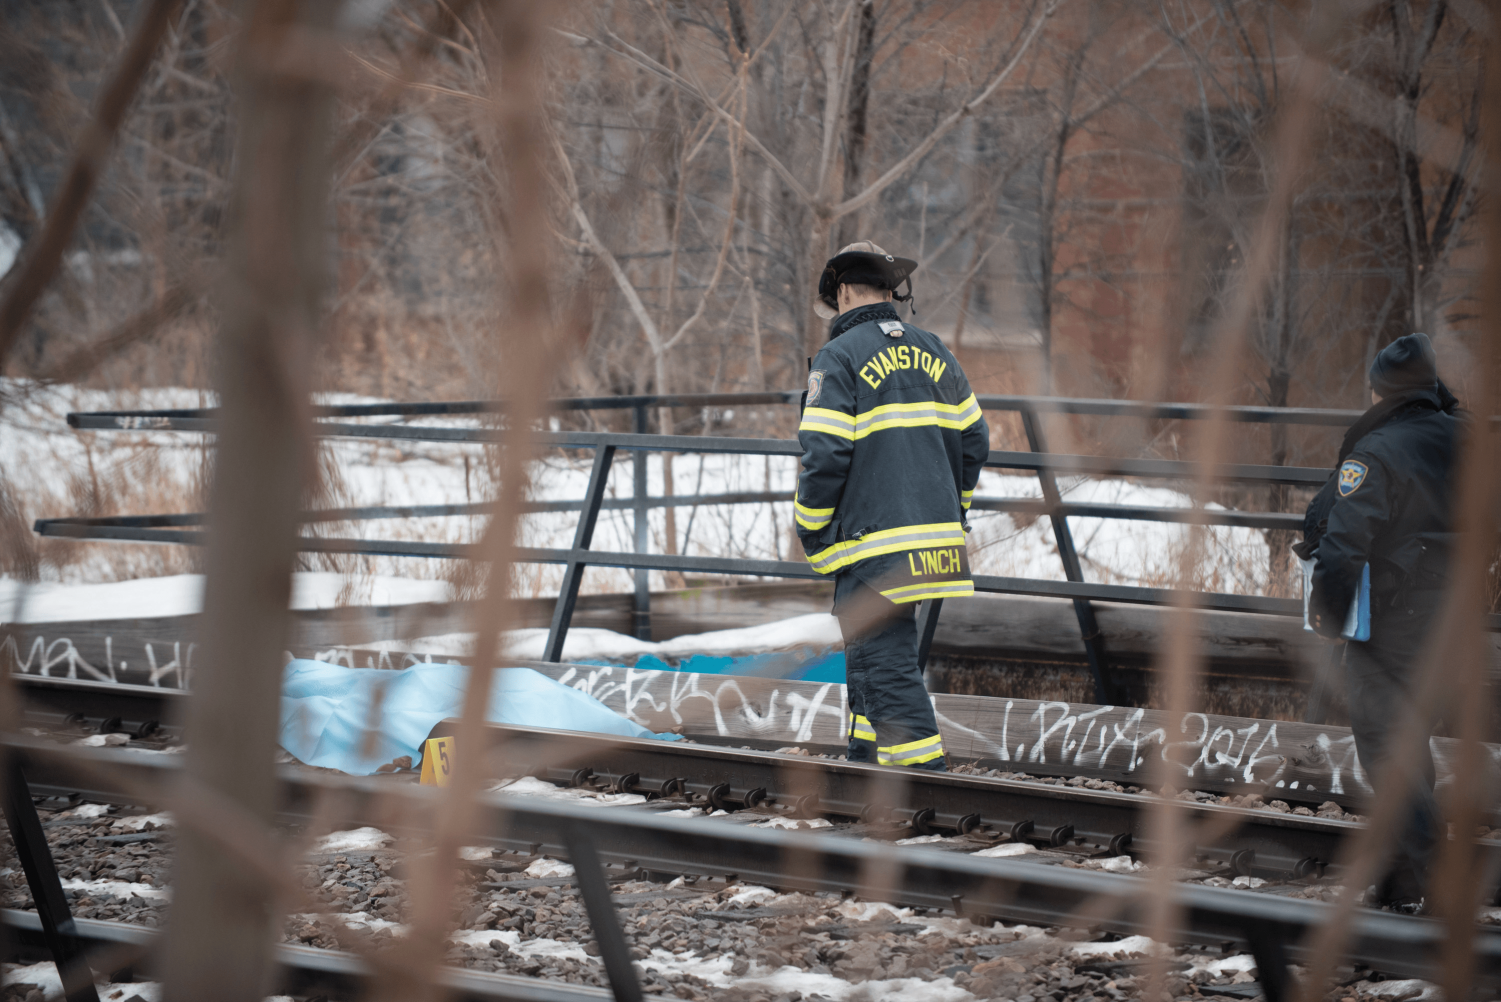 Evanston Fire Department firefighters investigate the Metra line. Evanston Police Department identified Monday the body of a man found near the Metra tracks.